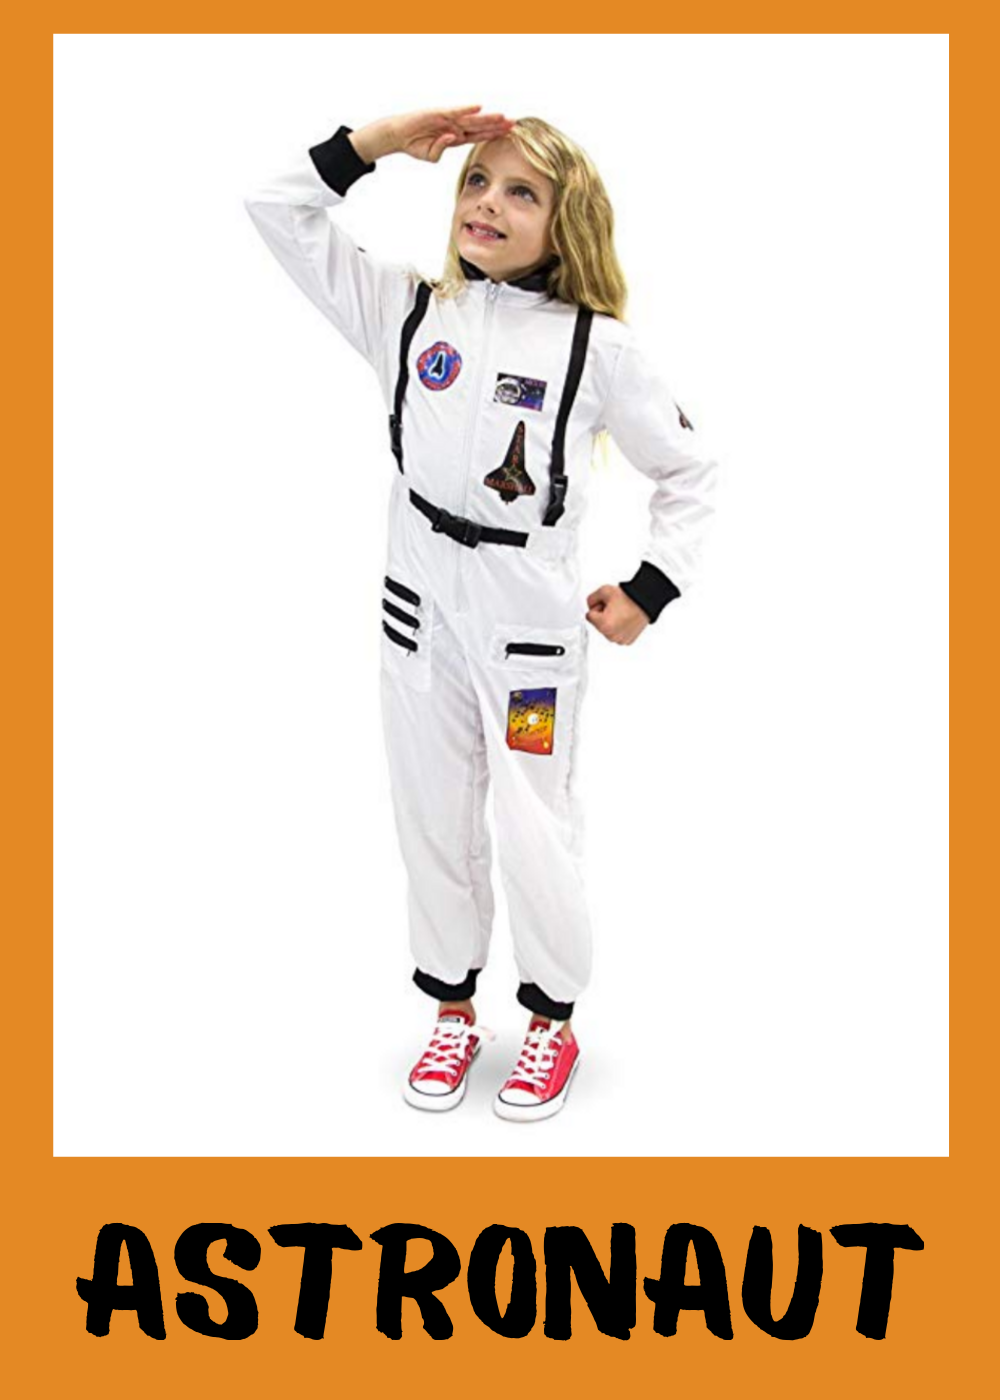 Astronaut   for $19.99 & up.